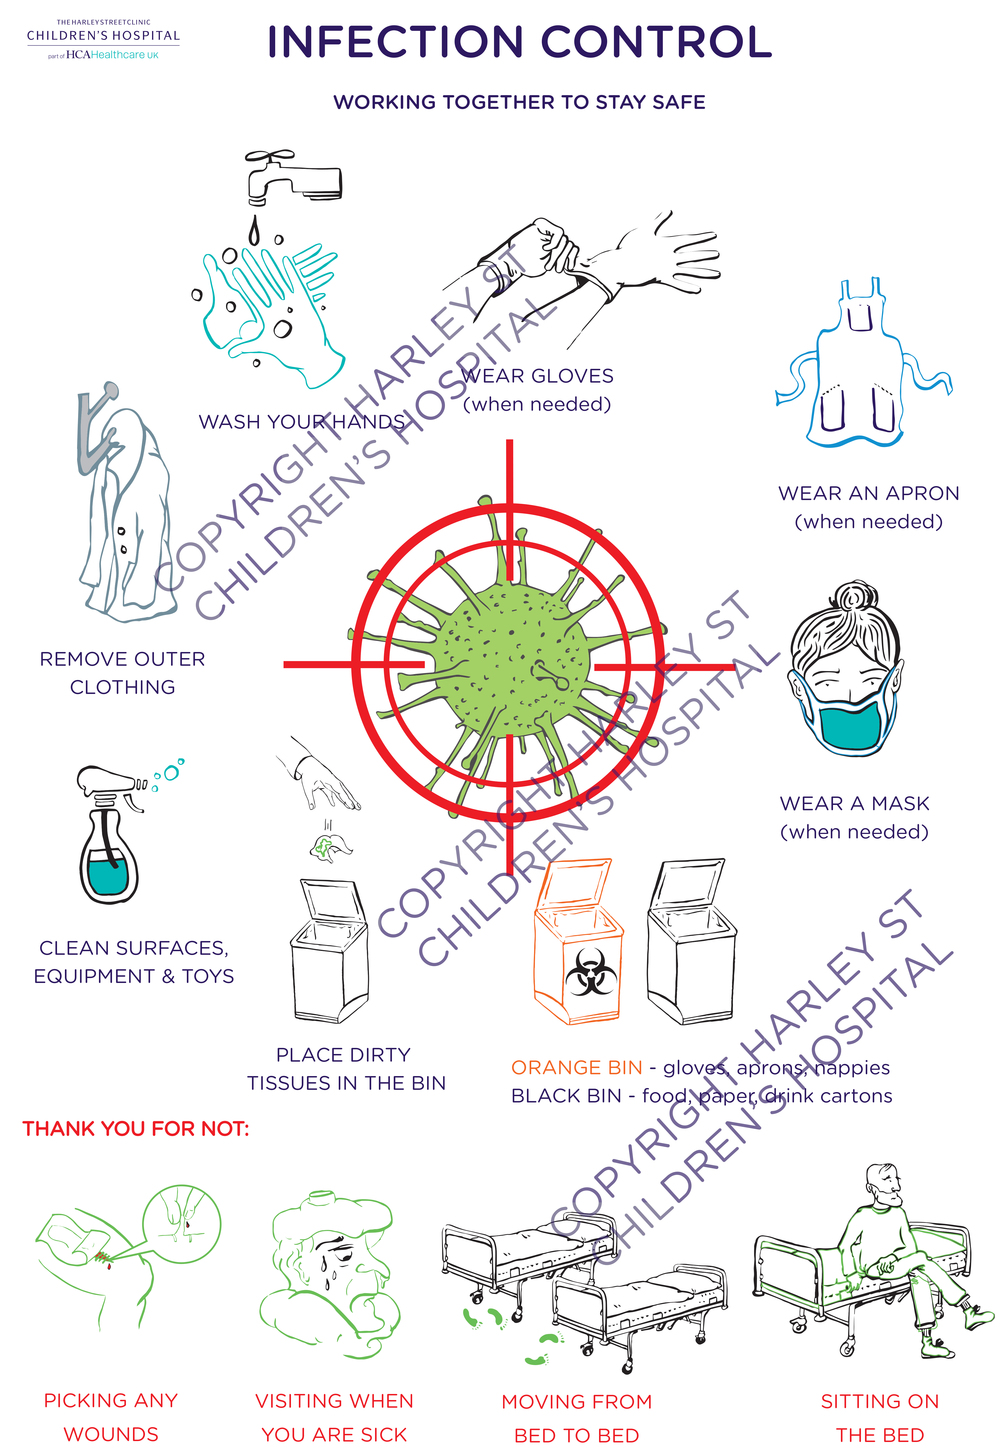 Harley Street Clinic: Infection Control Poster